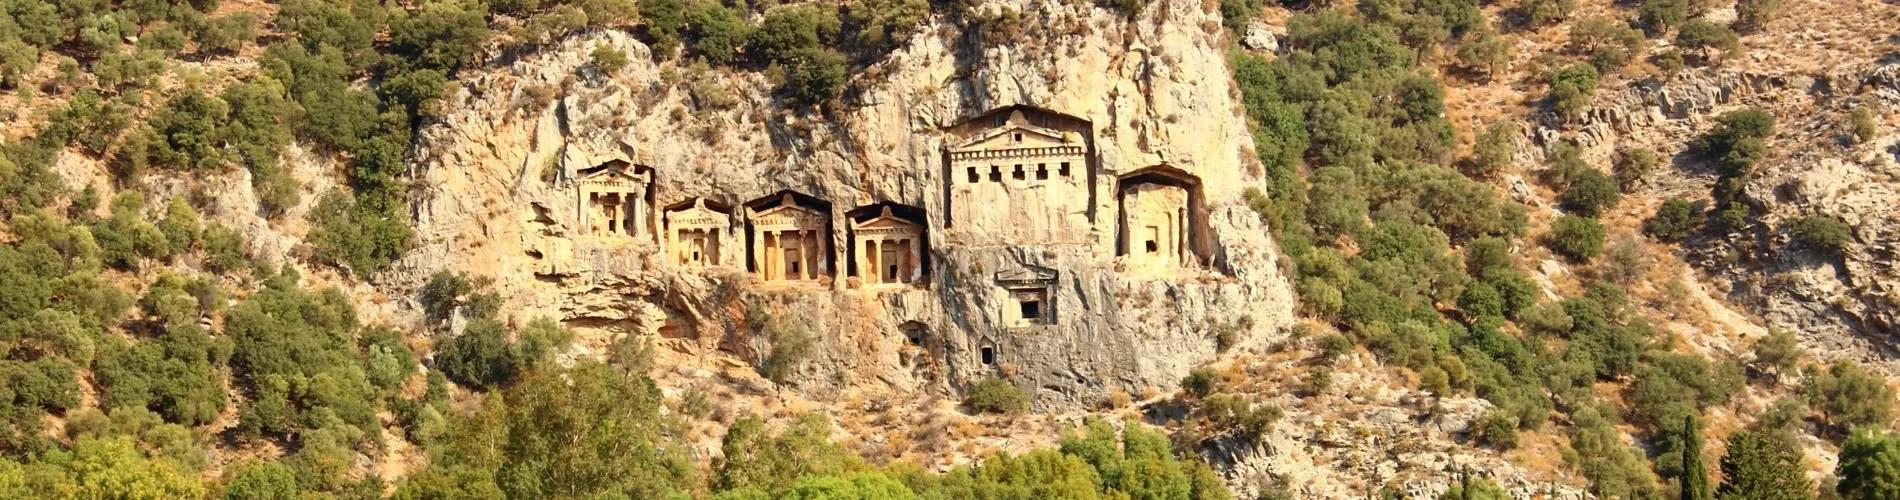 About Dalyan, Dalyan Photos